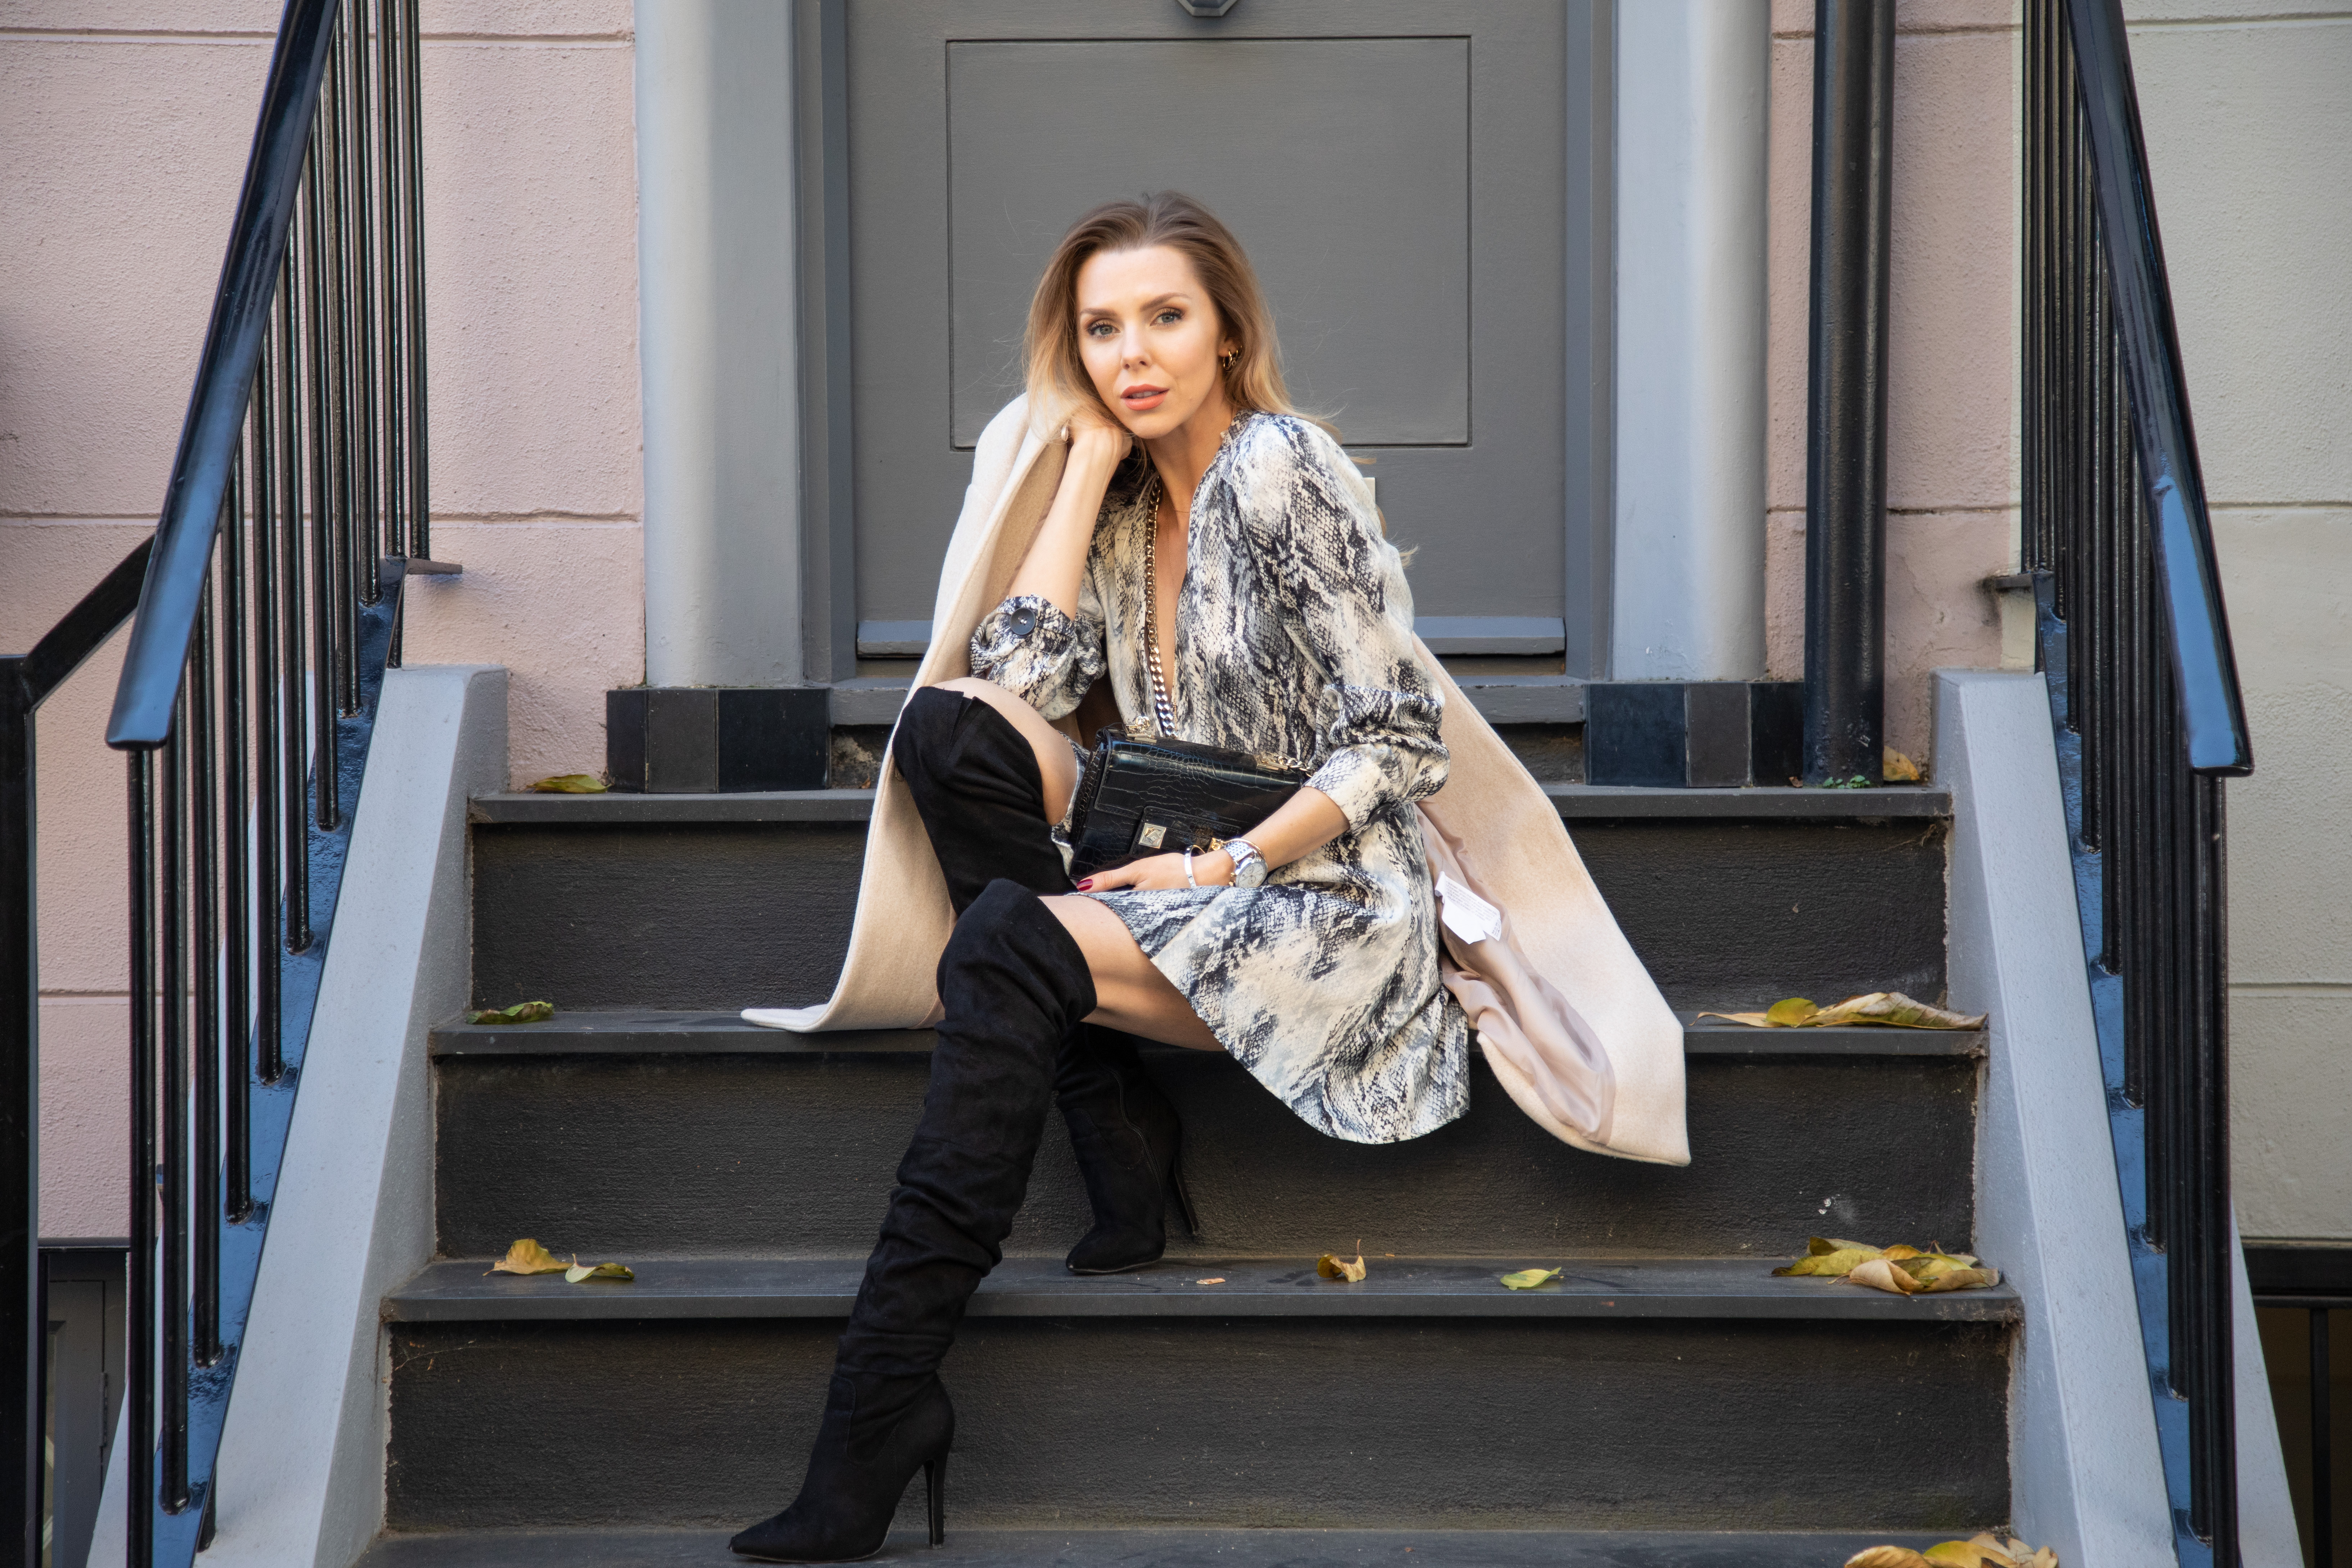 snake print, zara, autumn fashion, how to wear snake print, coats, winter boots, fashion, london fashion girl, british blogger, uk blogger, laura blair